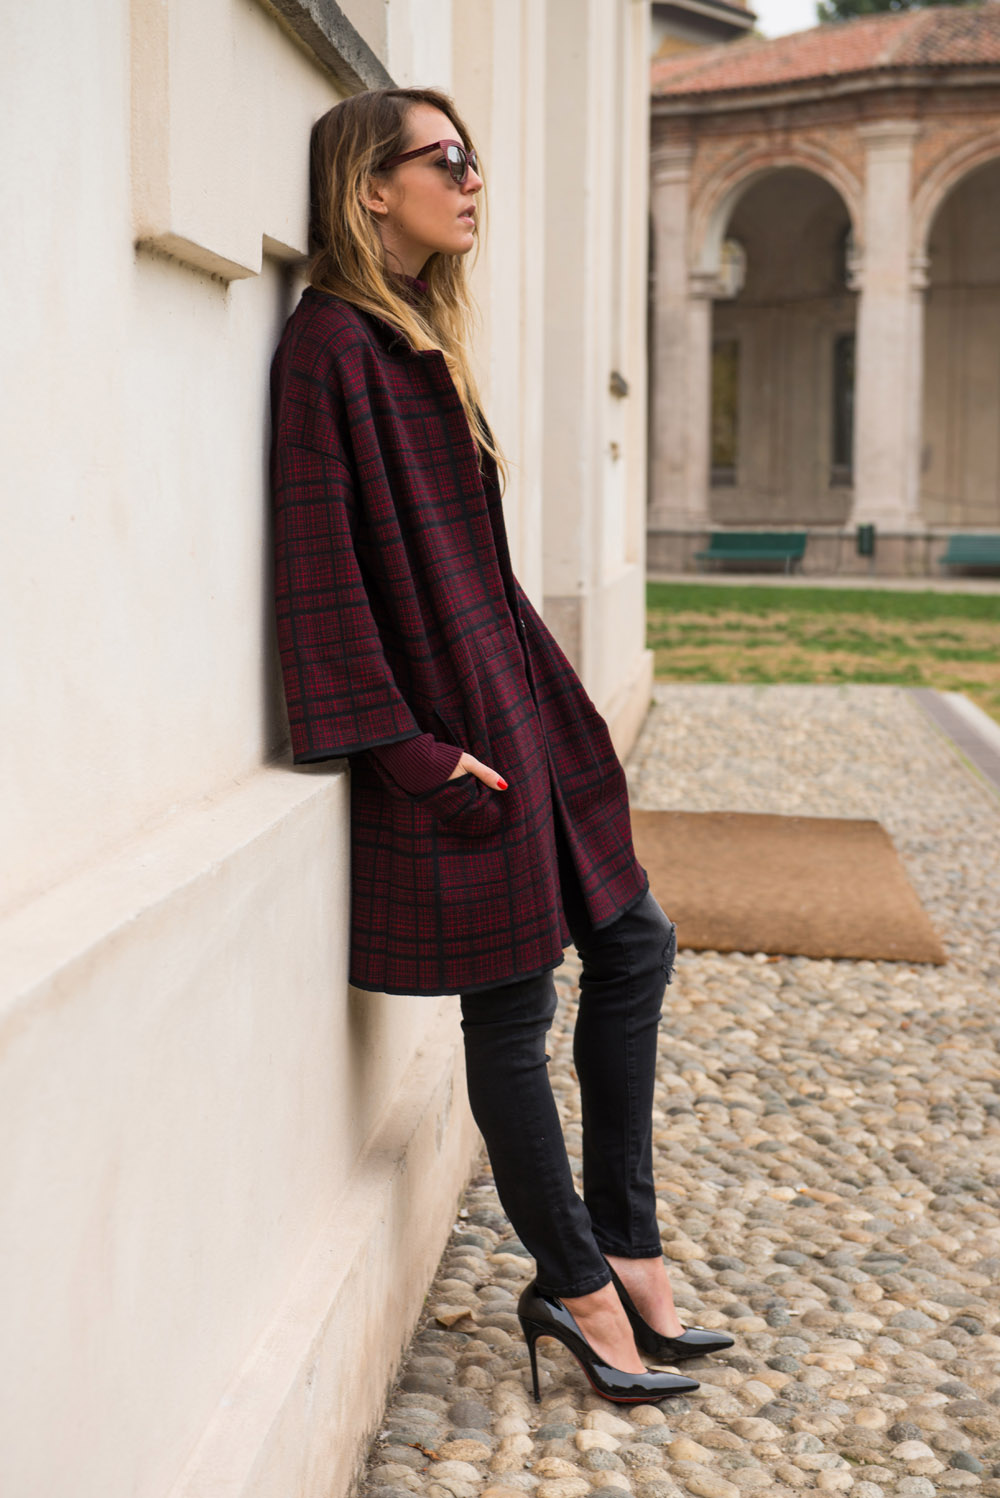 bordeaux coat for winter 2015